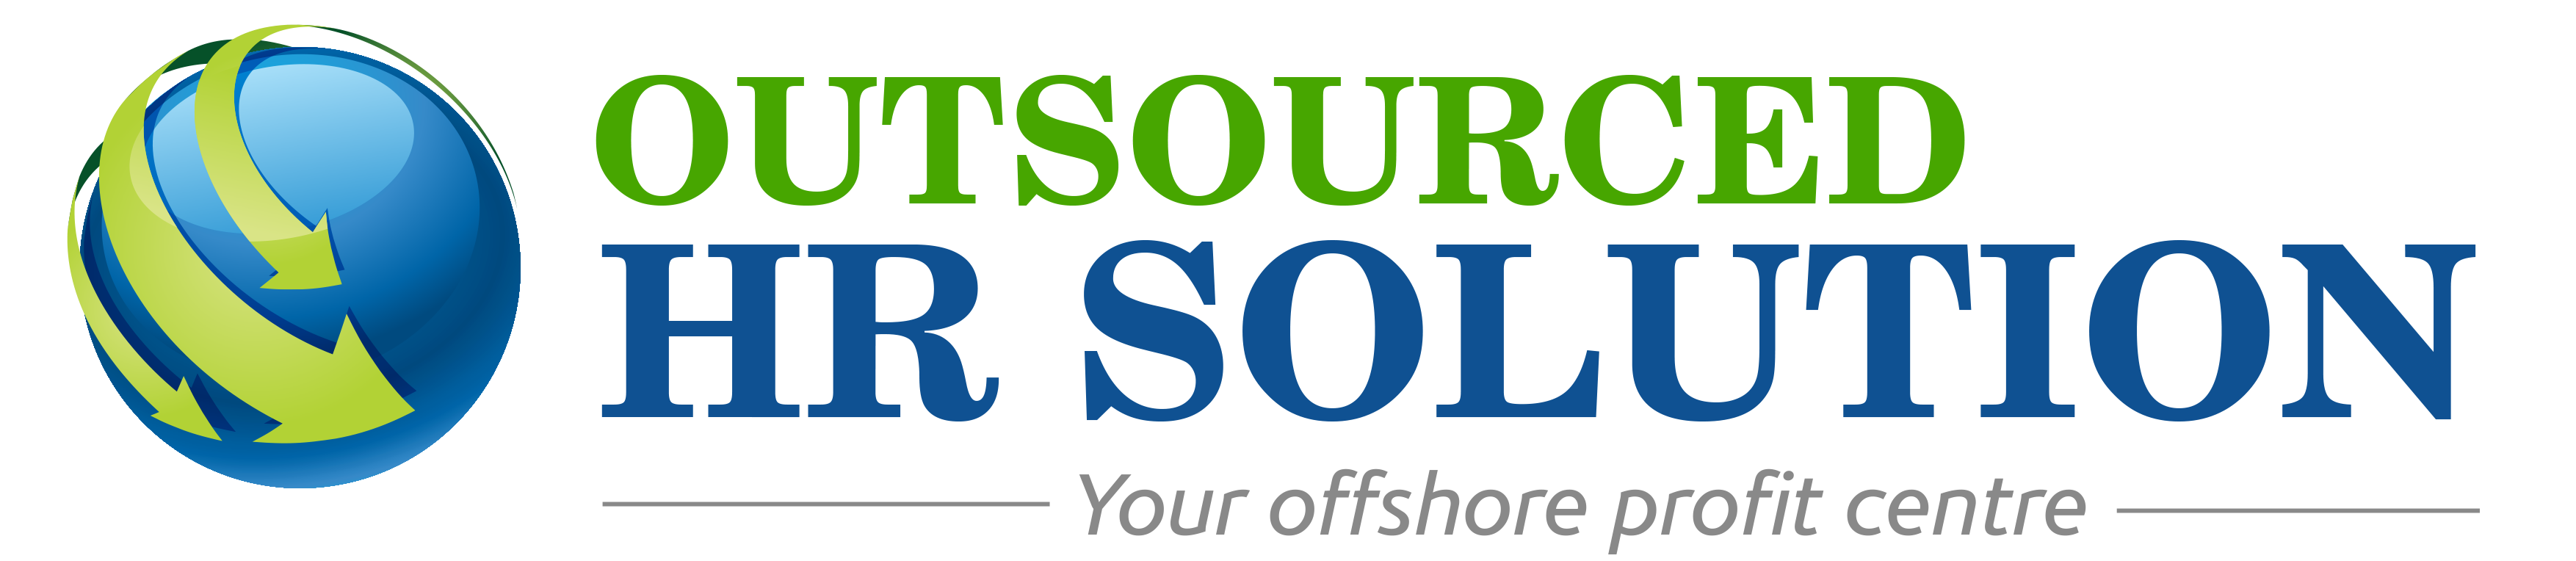 Outsourced HR Solution Corp.